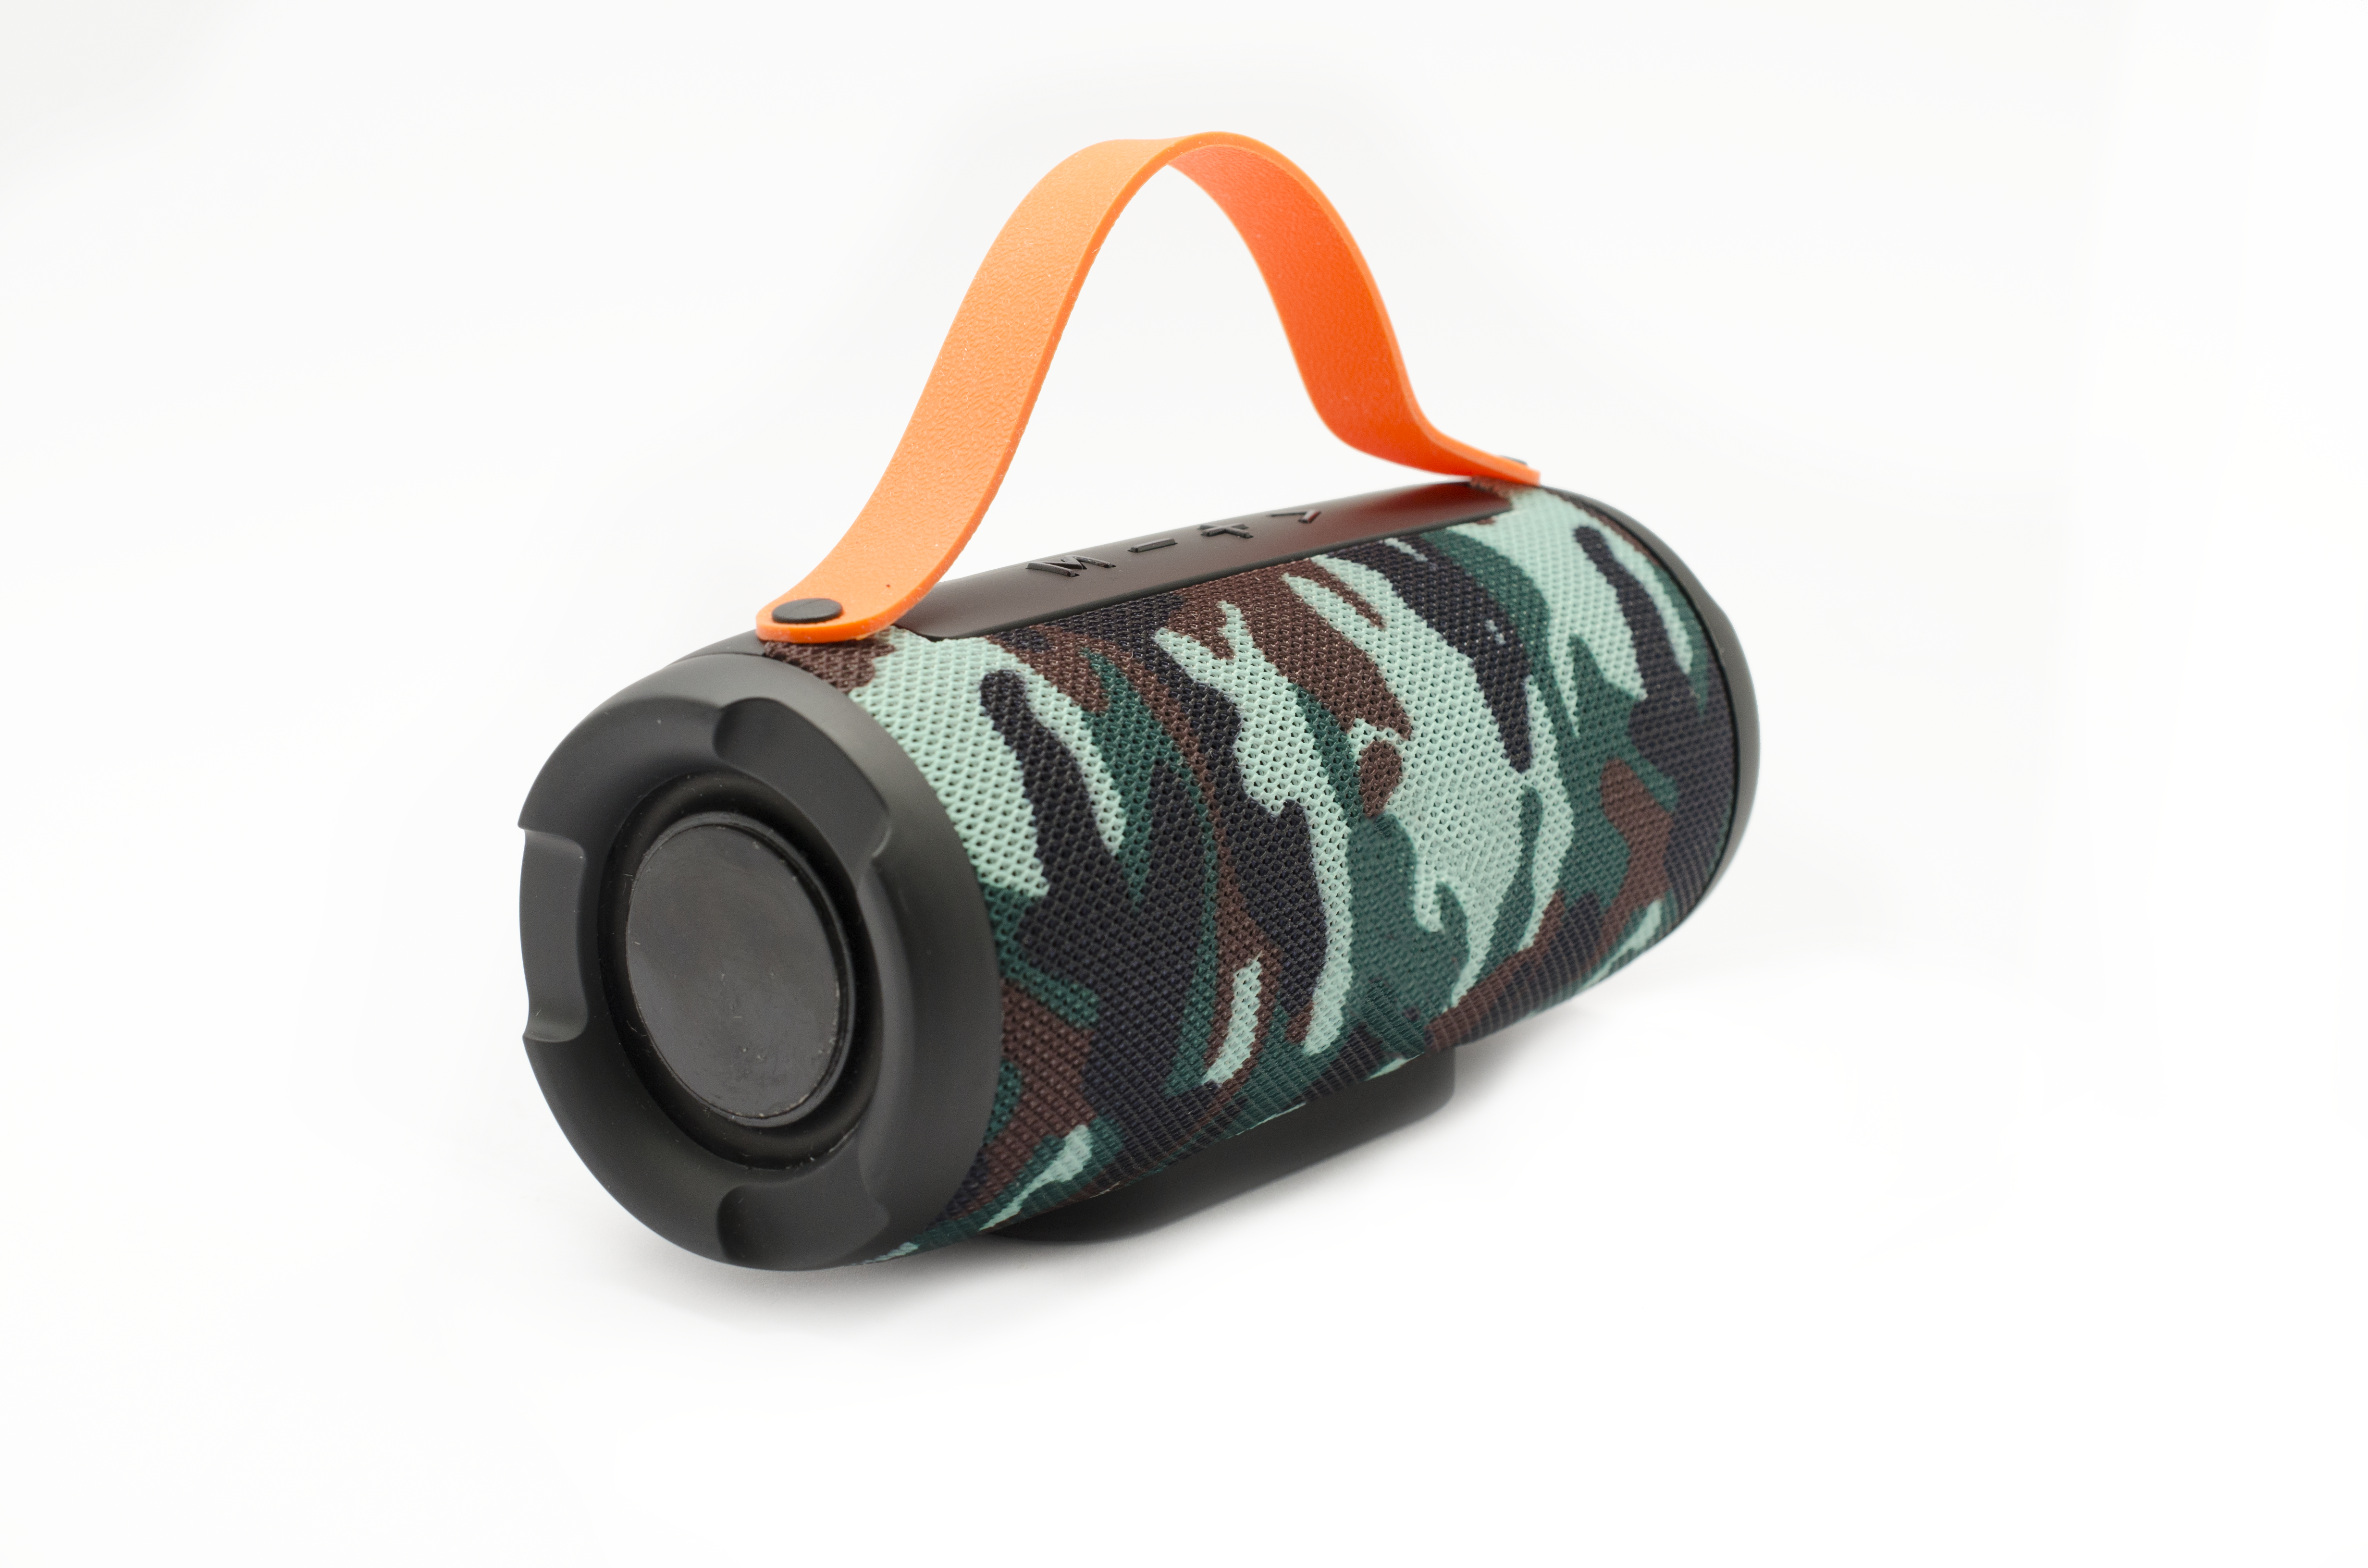 Slc 069 bluetooth speaker (army)